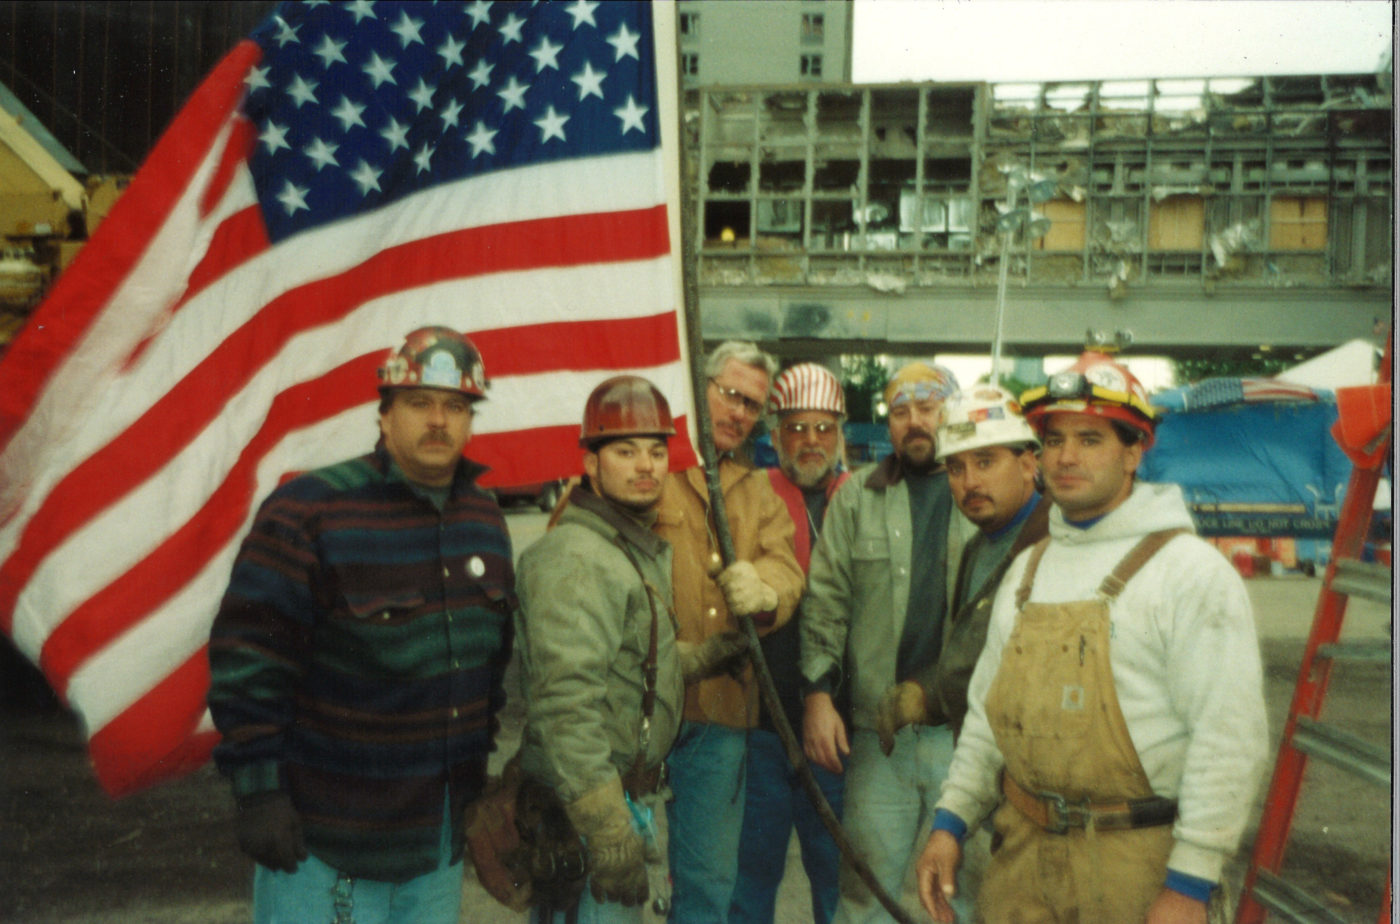 Seven Unknown Workers Take a Photo with the Flag